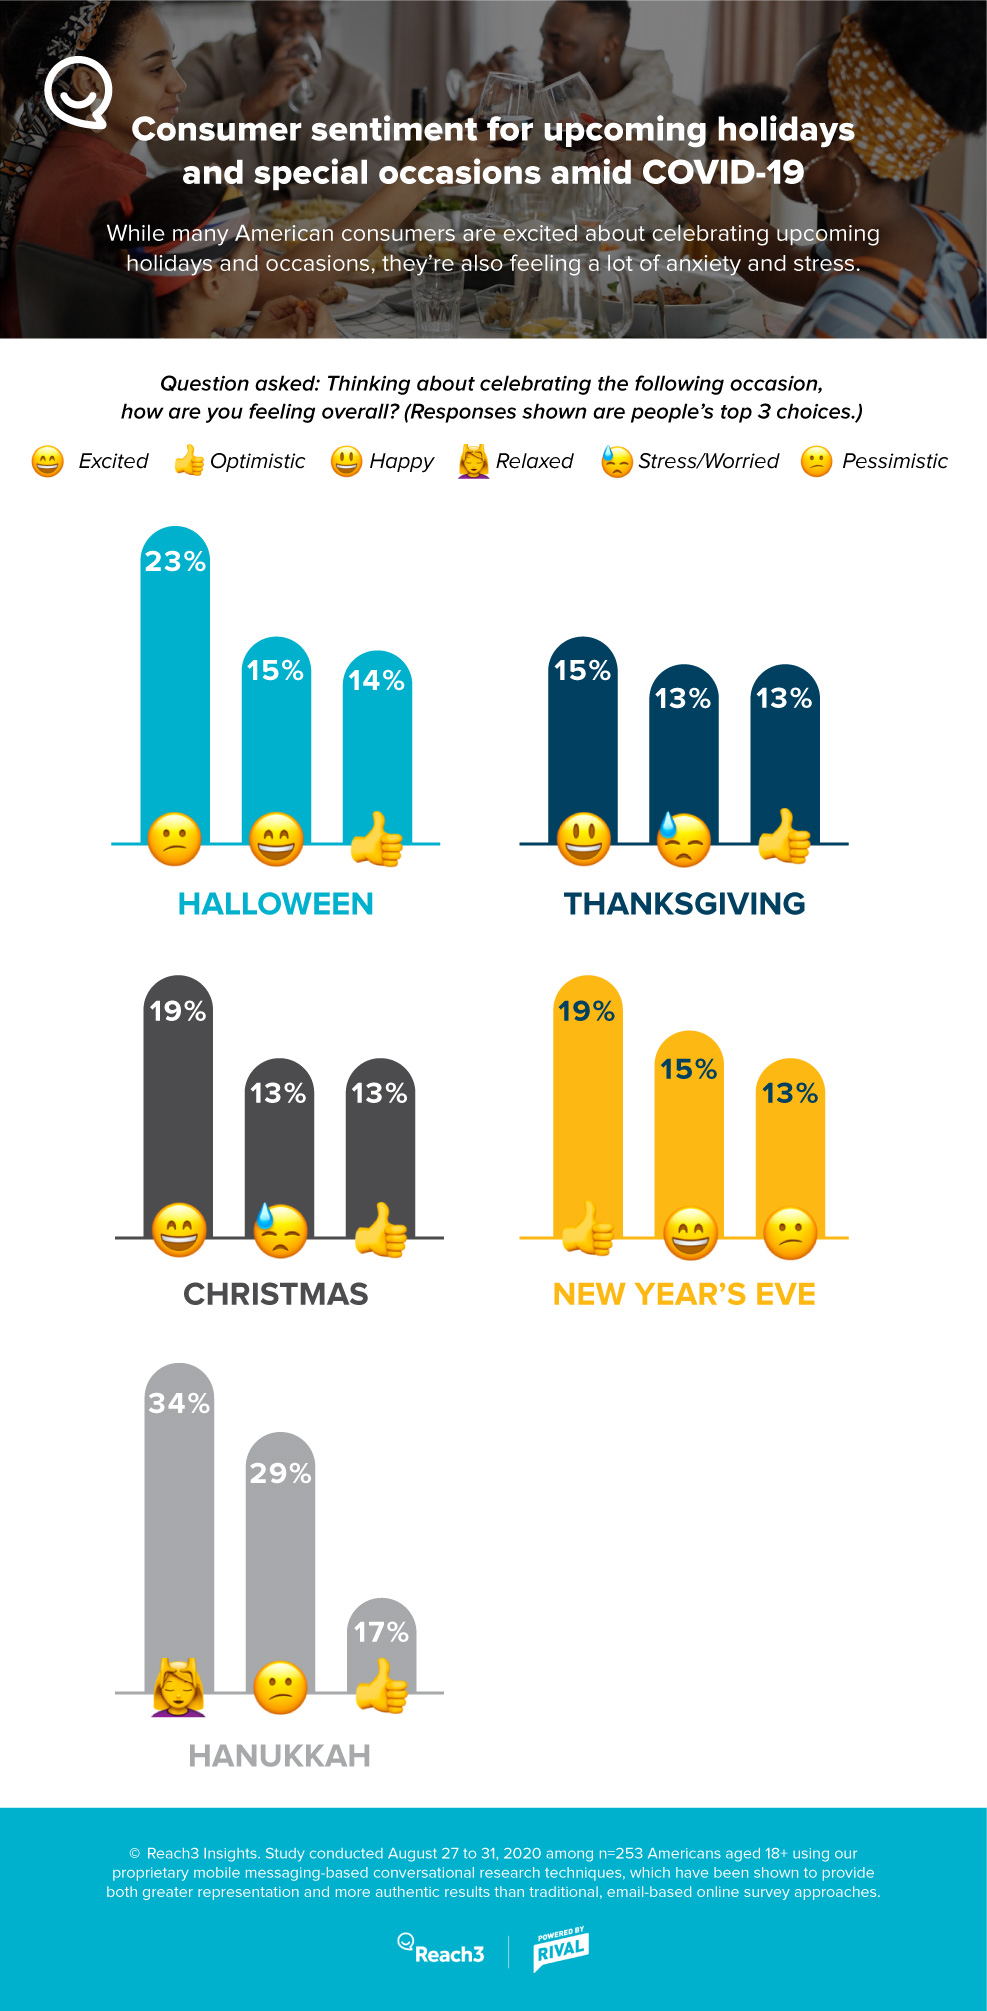 consumer-sentiment-holidays-amid-covid-infographic